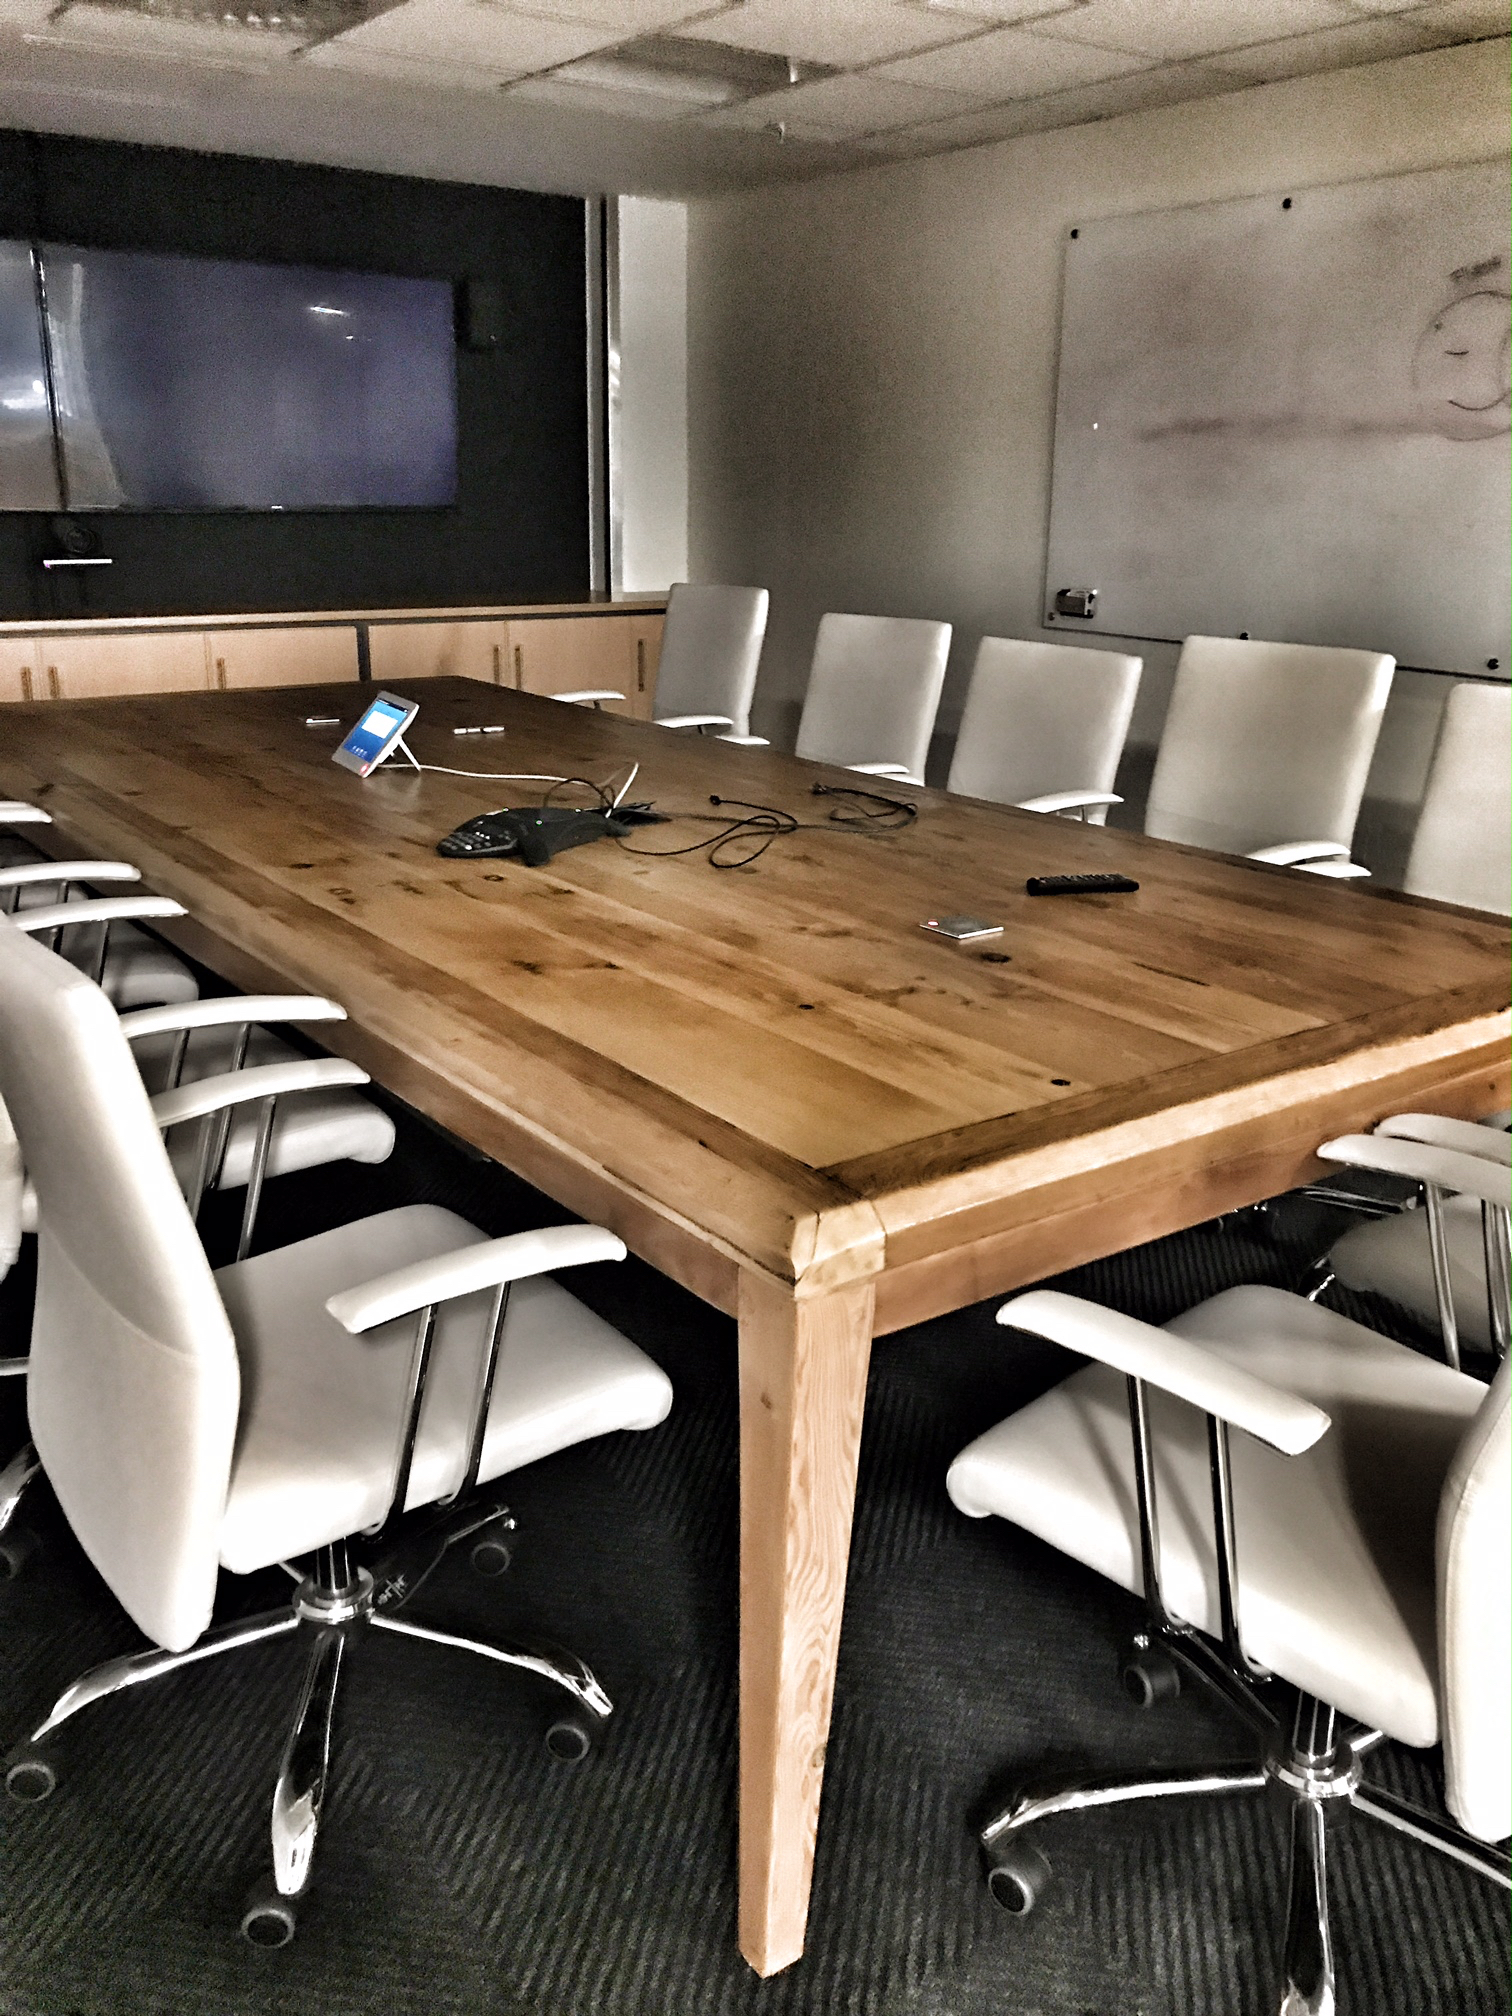 Oregon board room table